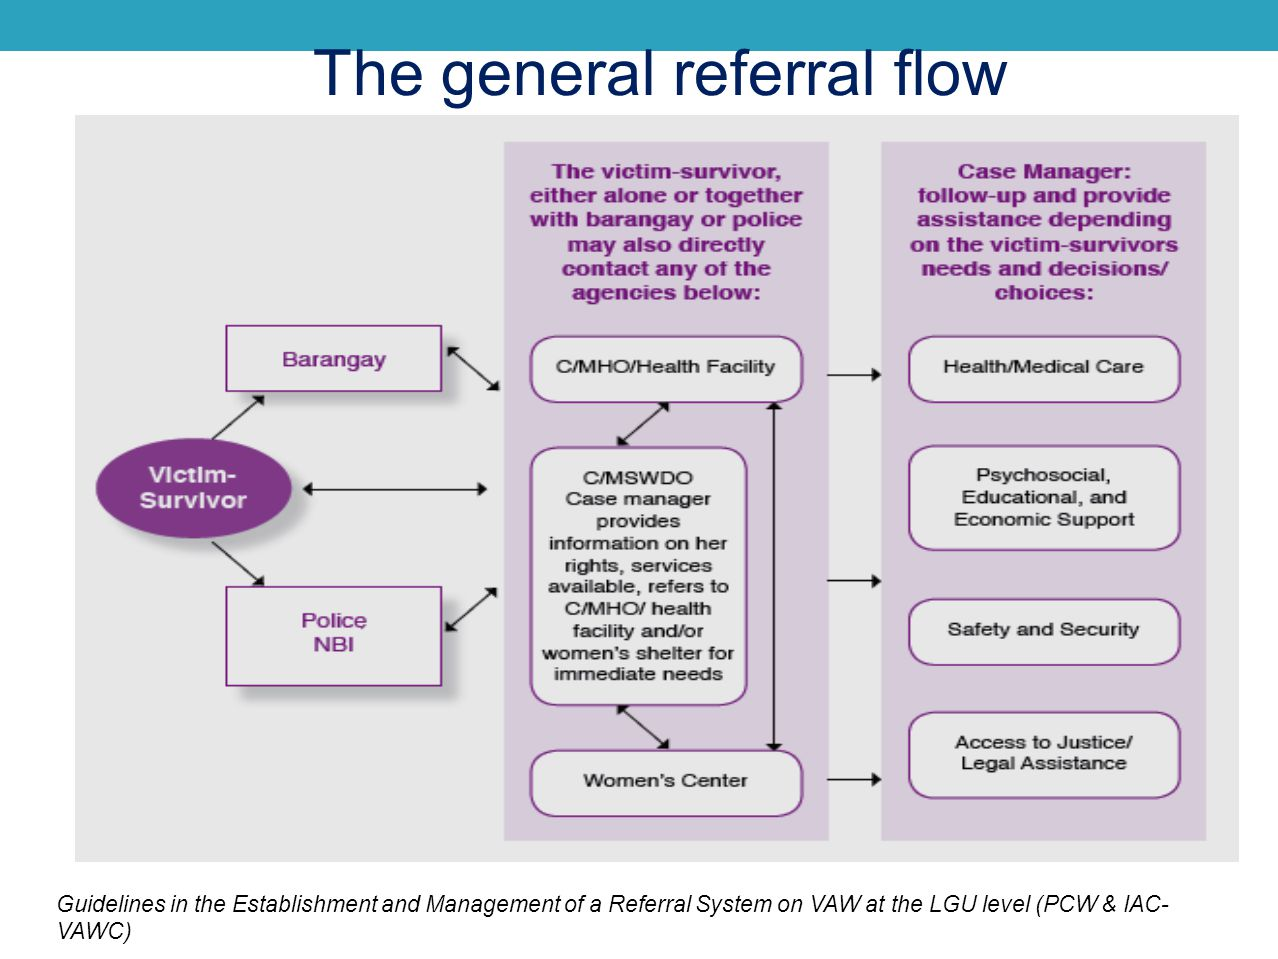 The general referral flow